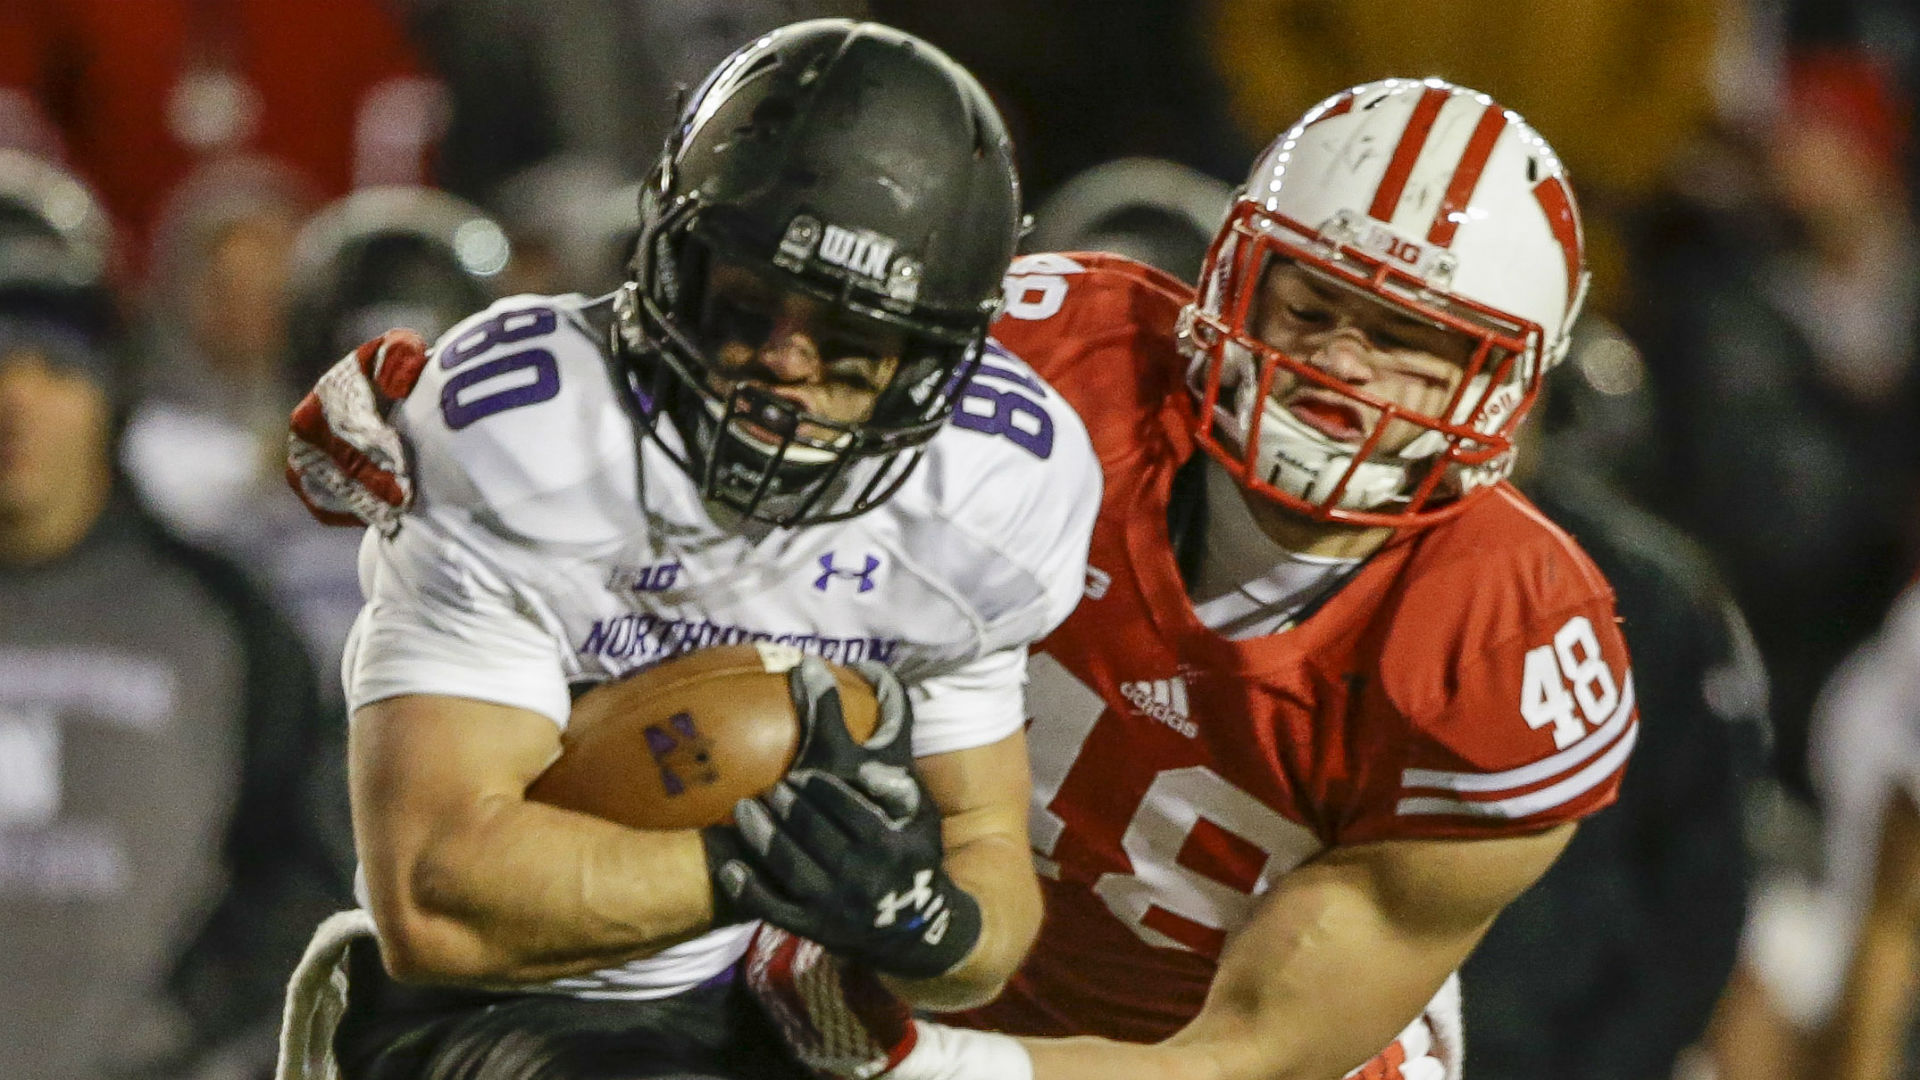 Wisconsin LB Cichy tears ACL, out for season